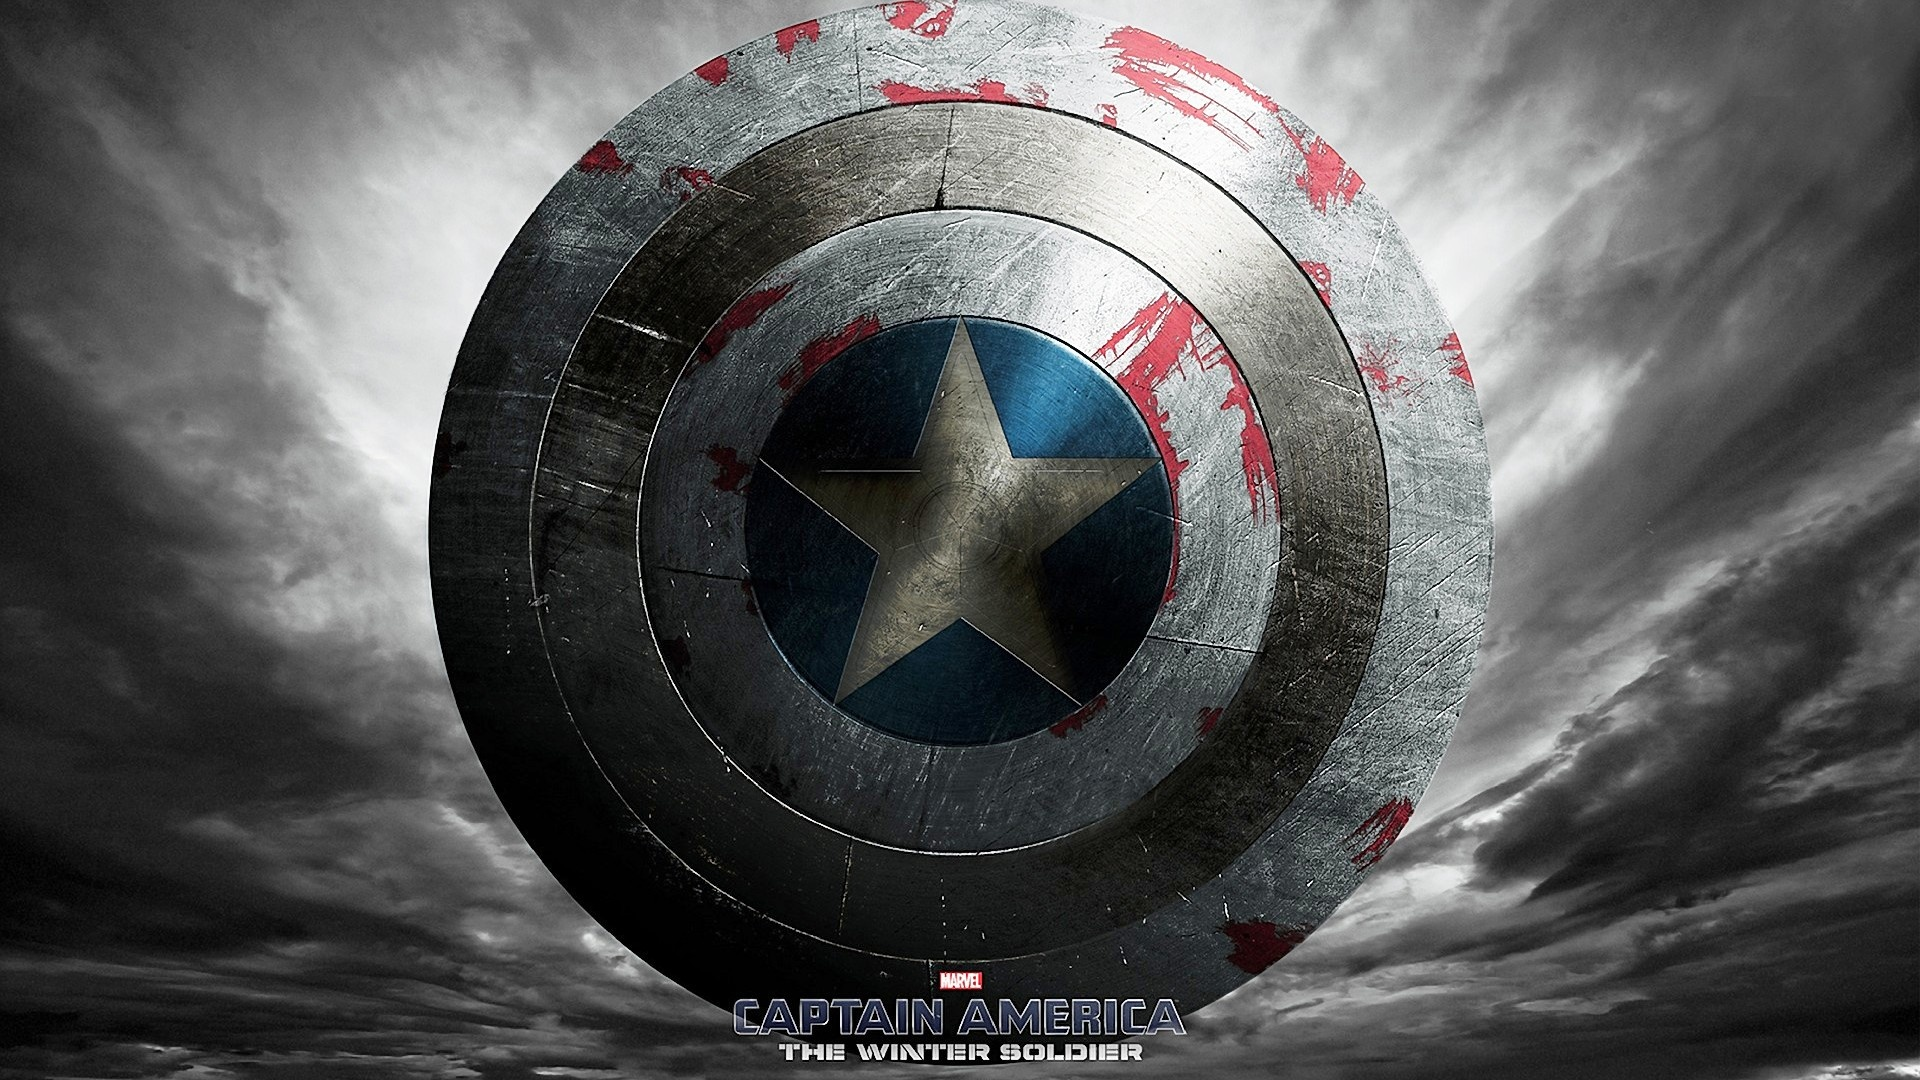 captain america shield the winter soldier movie 2014 hd wallpaper 1920x1080